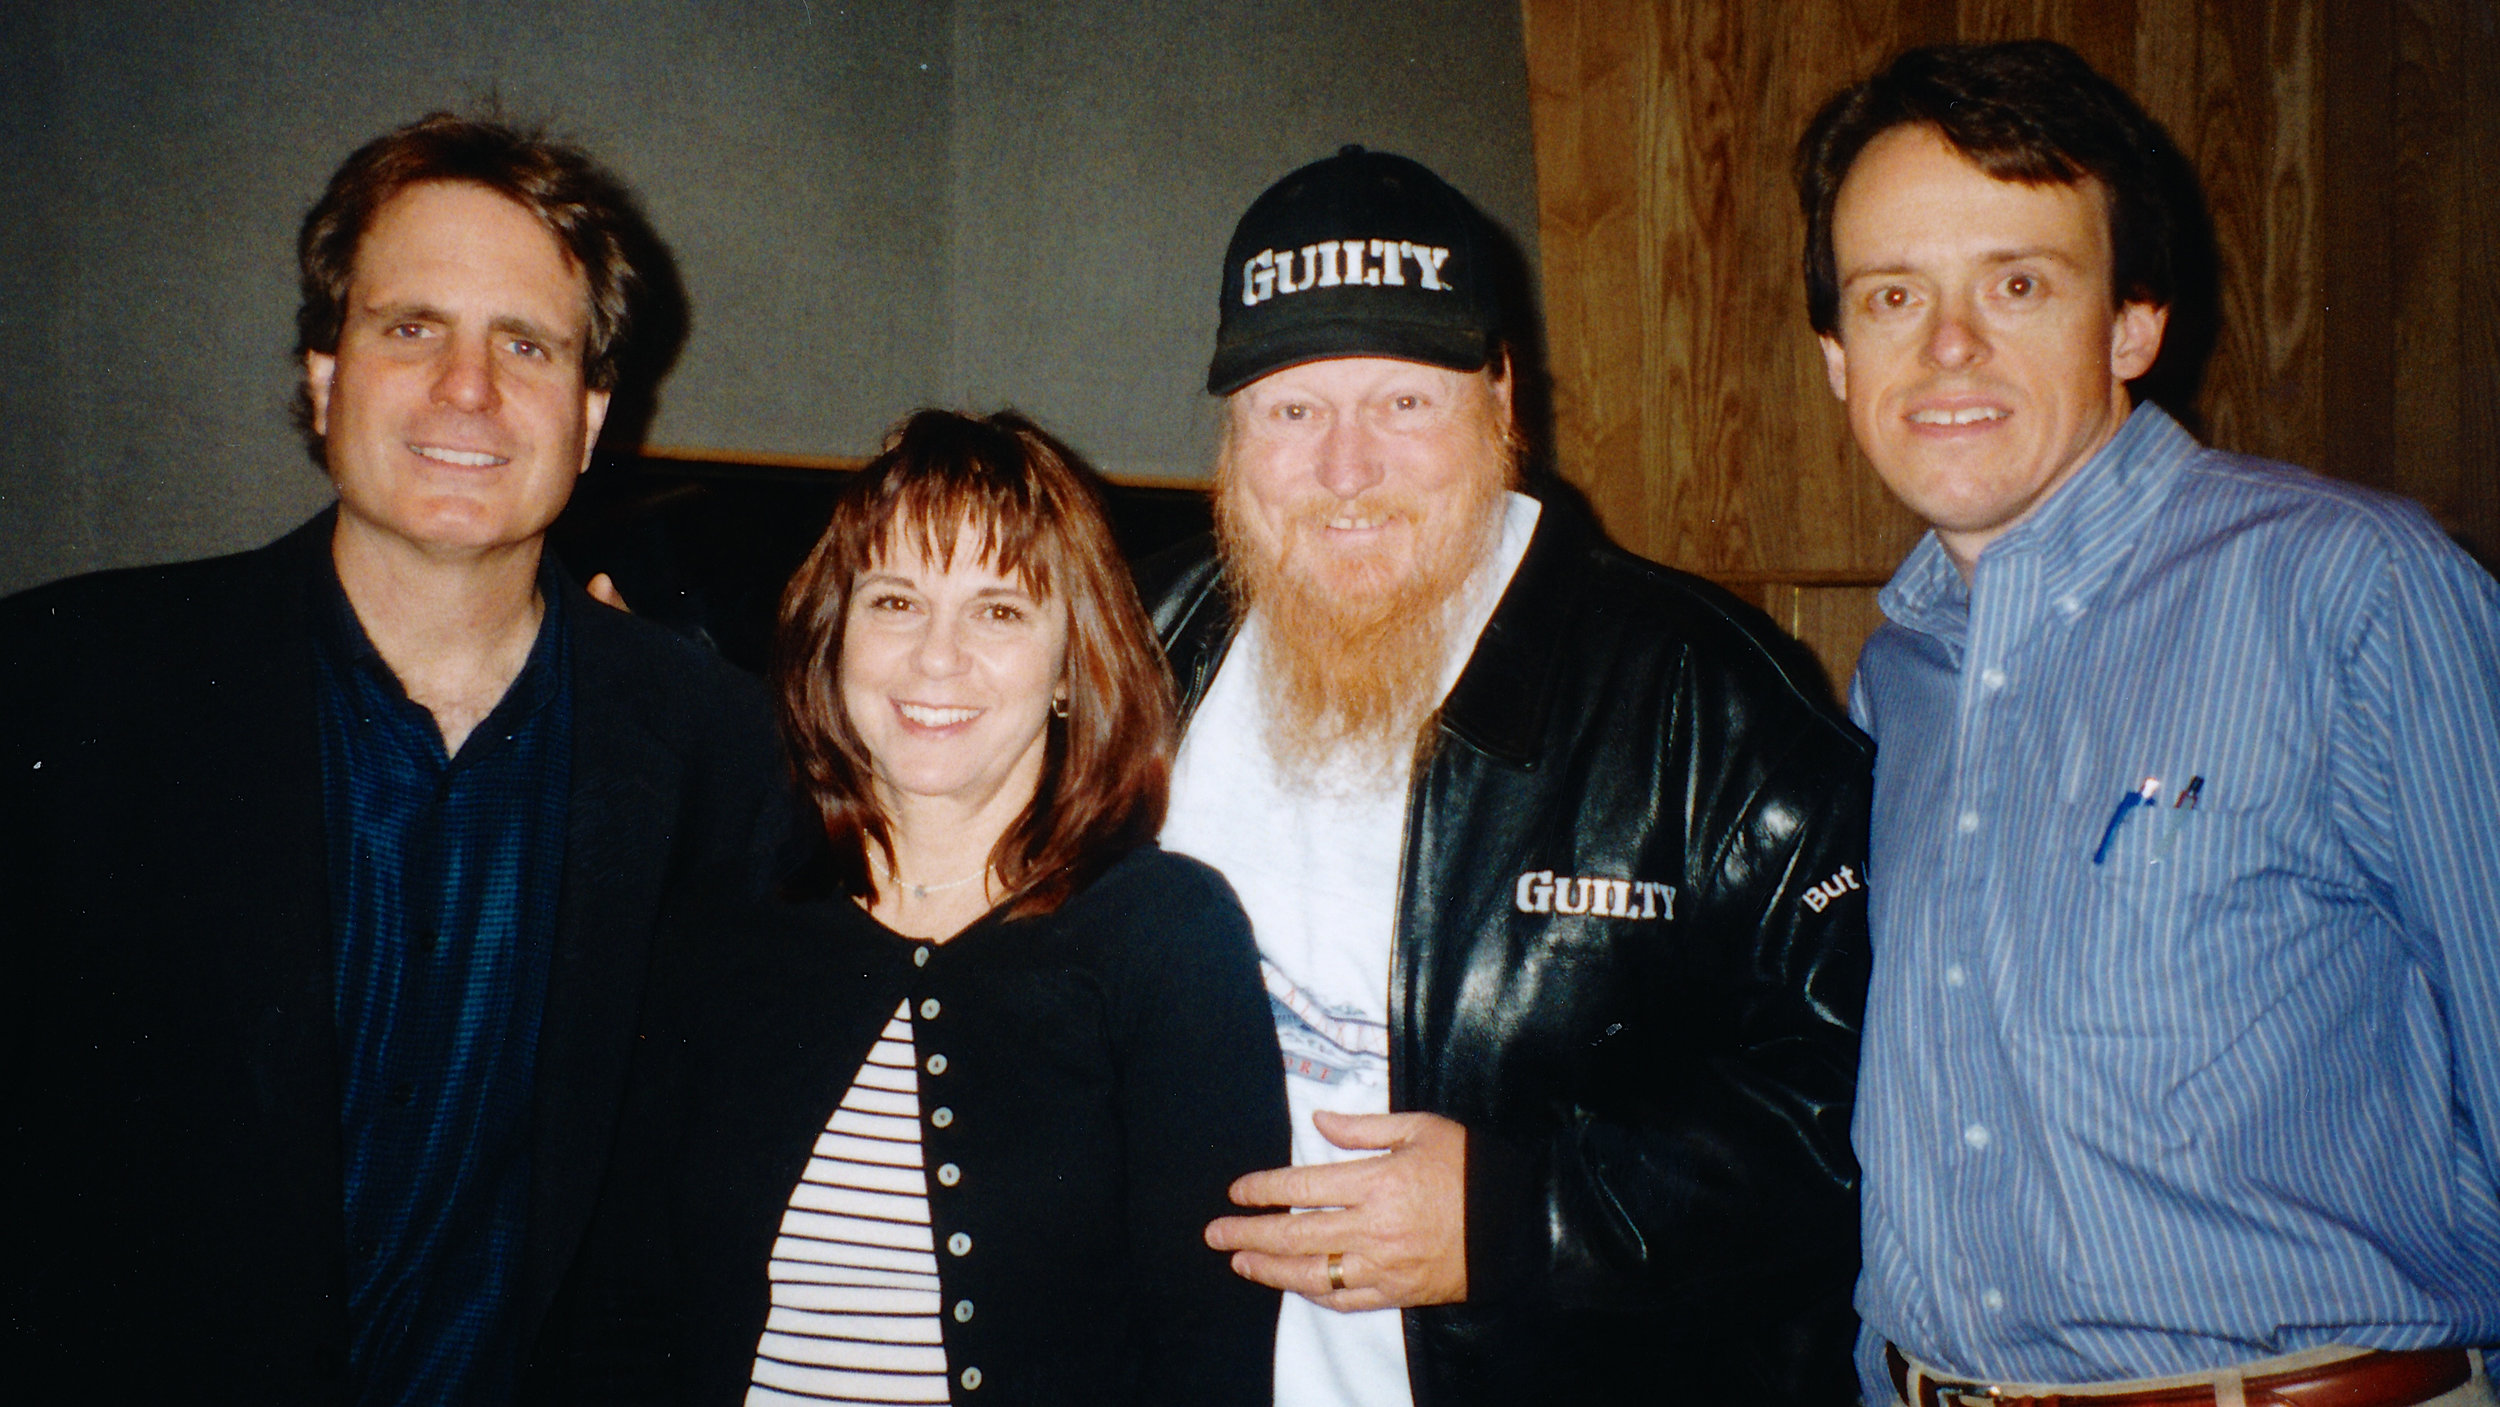 Dan Foliart, unknown, Mickey Jones and Les Brockmann, O'Henry Studio 4-9-99 Final Home Improvement Pre-record.jpg